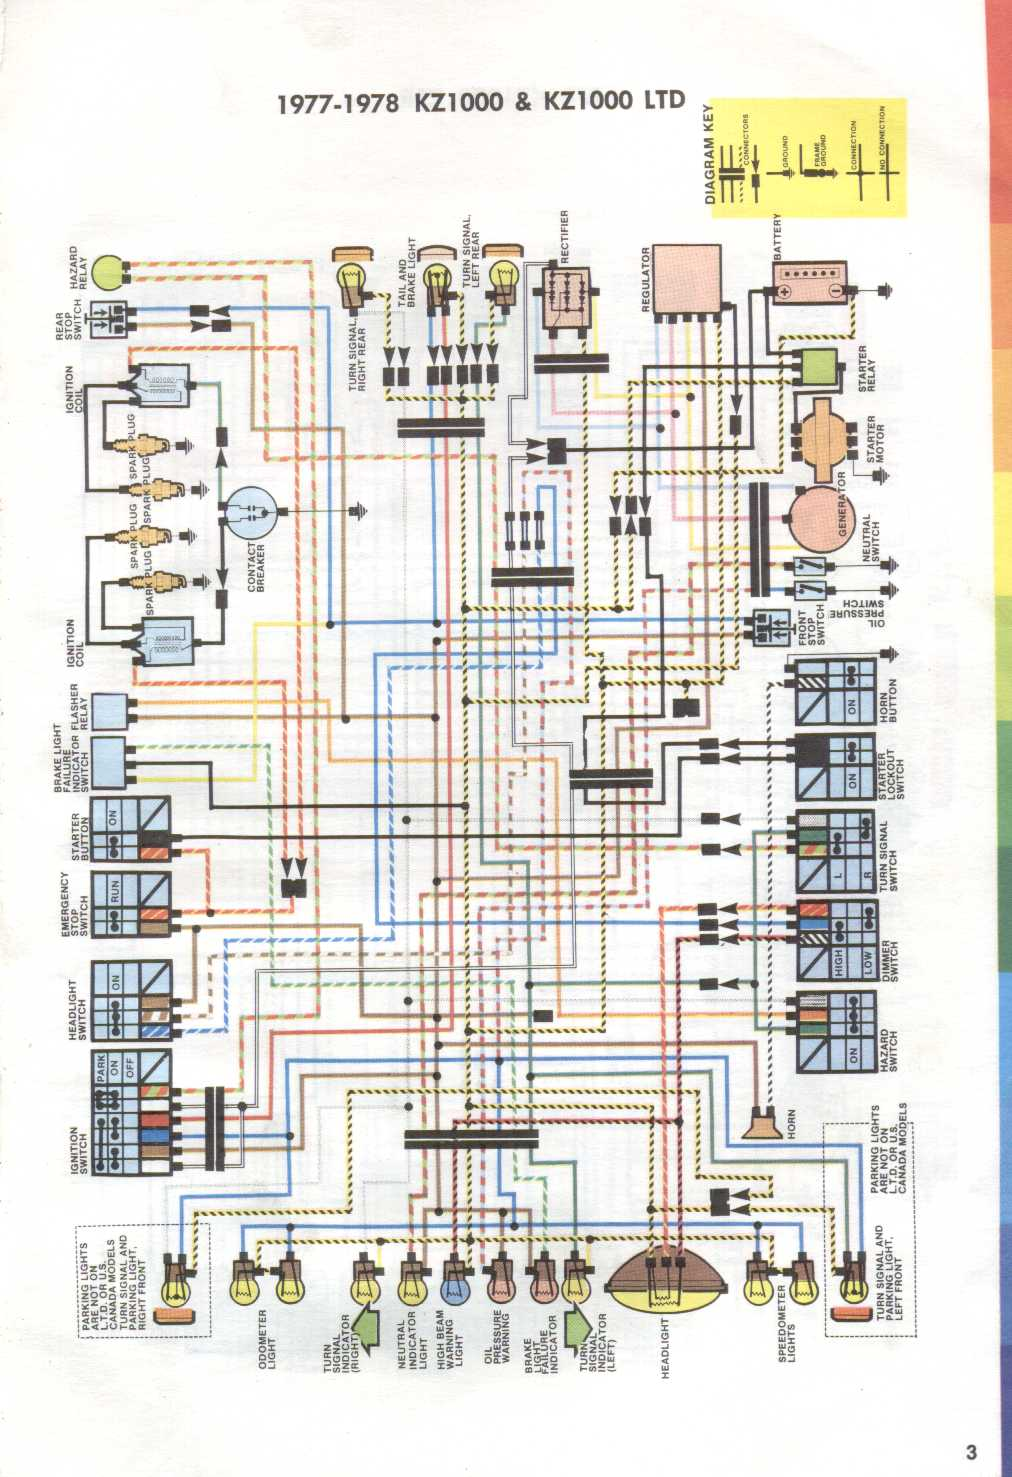 Kawasaki_KZ1000 LTD_Wiring_Diagram_1977 1978 motorcycle wiring diagrams 1978 gs750 wiring diagram at nearapp.co